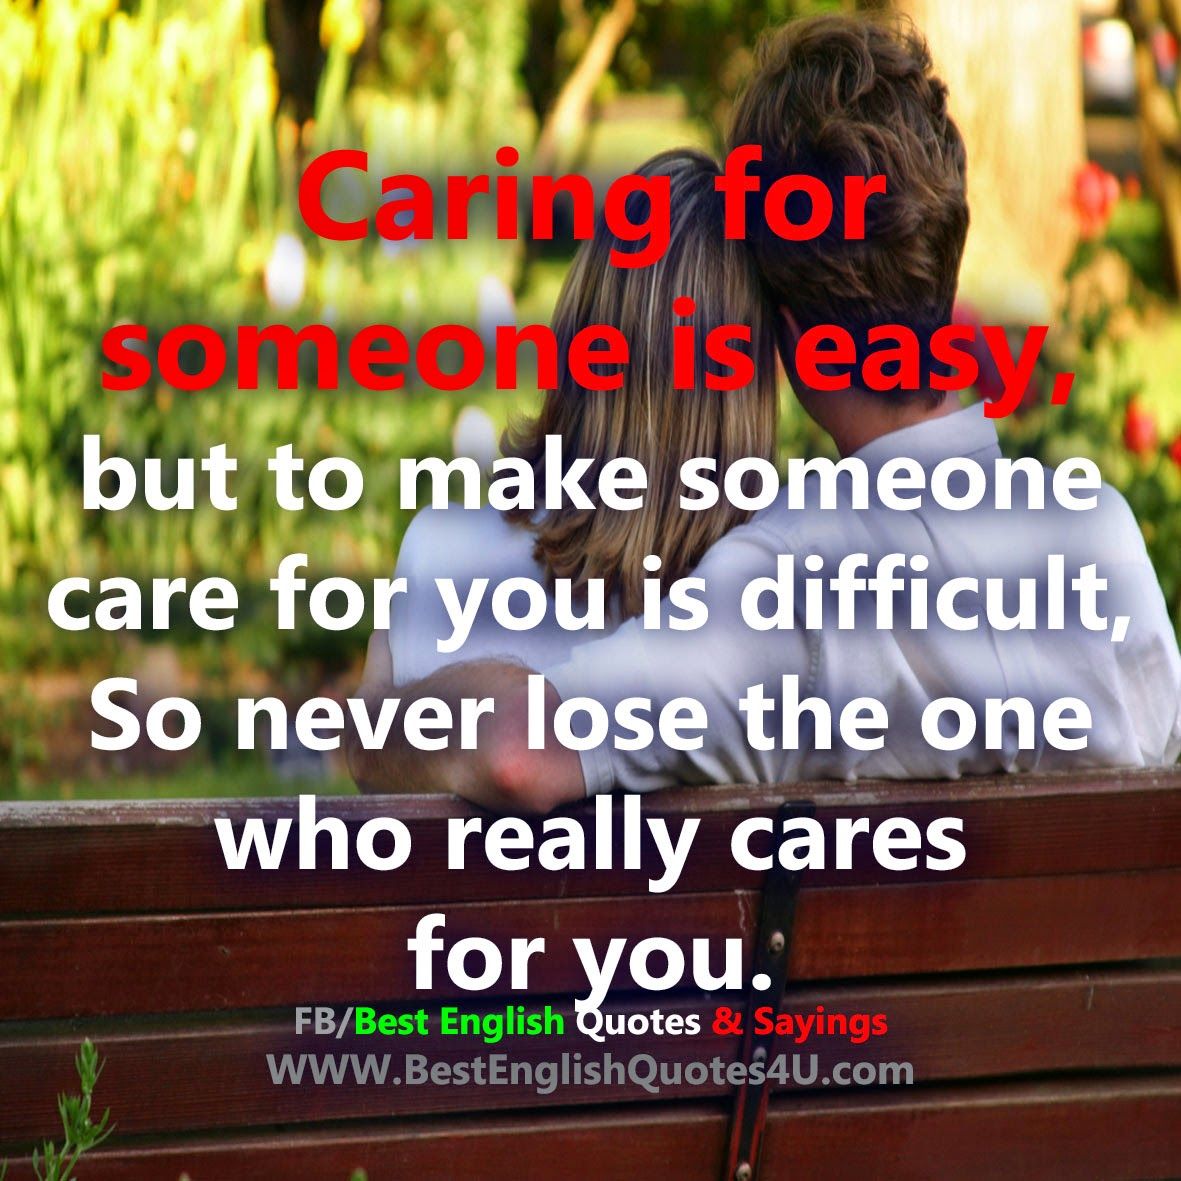 Quotes About Losing Friends And Not Caring: Quotes About Caring For Someone. QuotesGram